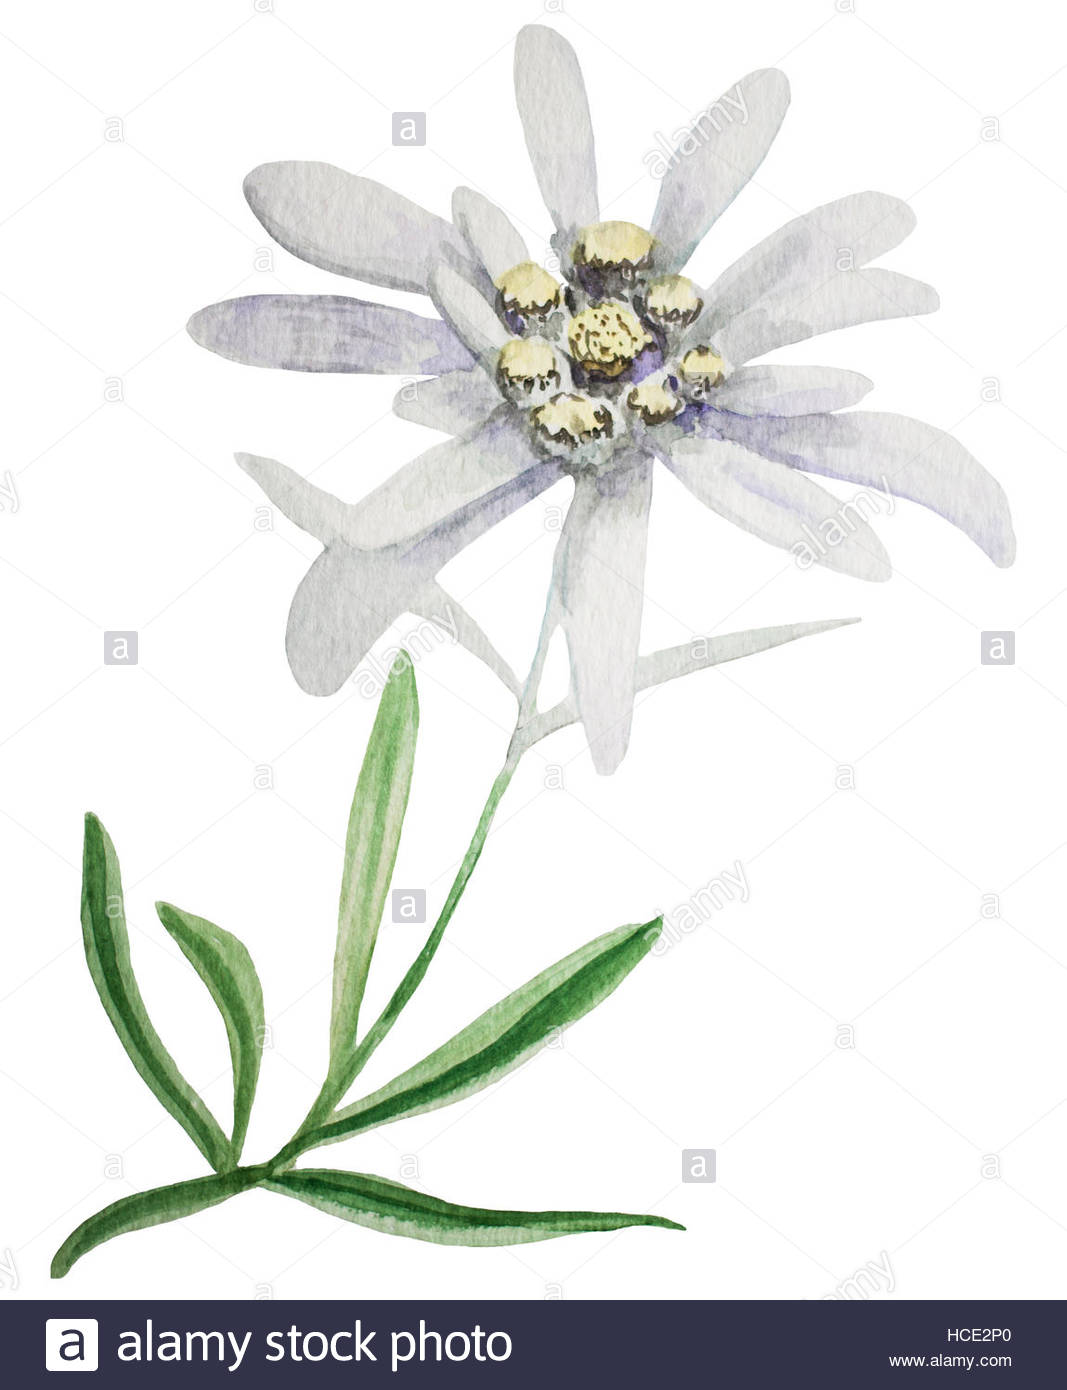 1067x1390 Edelweiss Flower. Handmade Watercolor Painting Illustration On